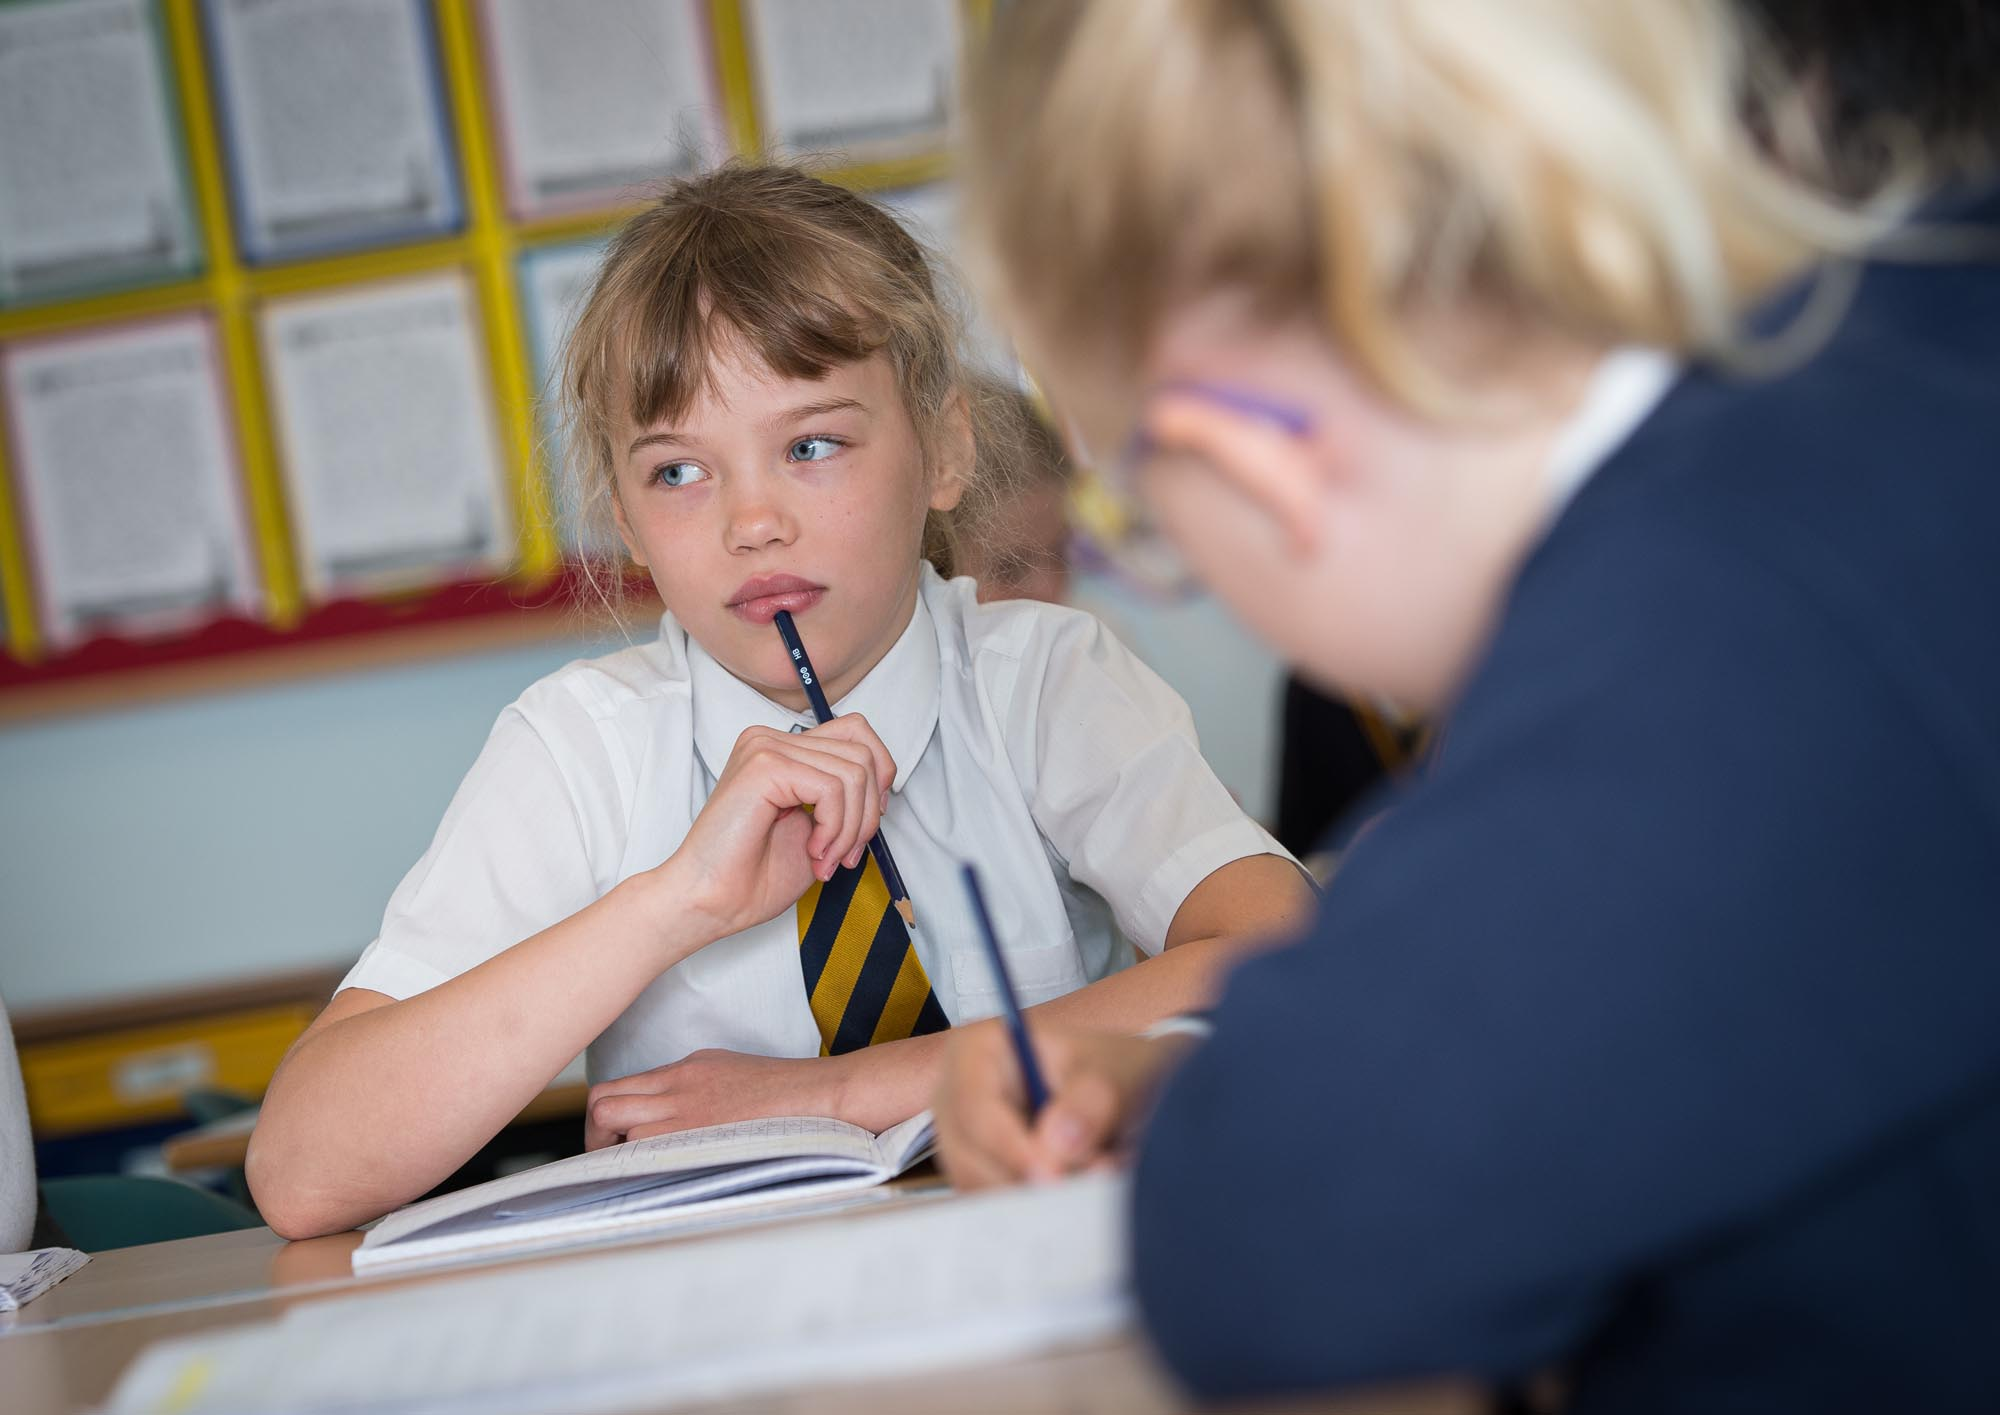 Girl at desk being thoughtful